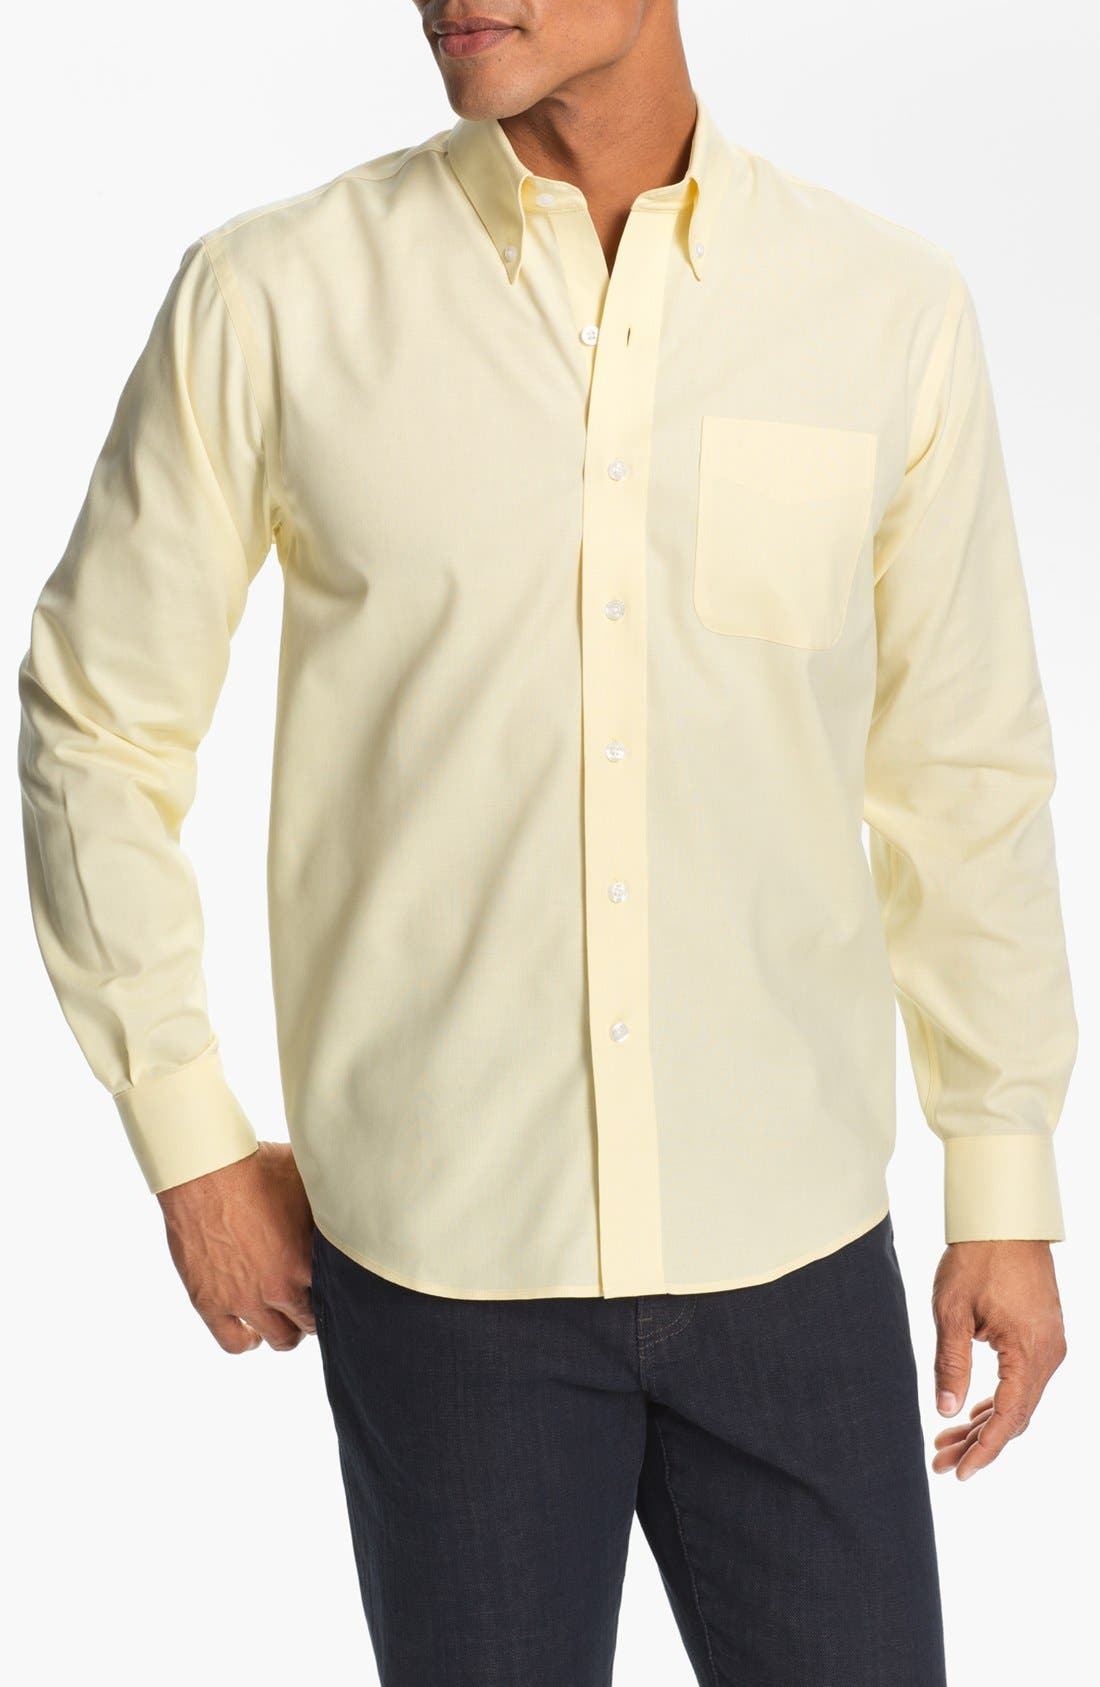 Alternate Image 1 Selected - Cutter & Buck Nailshead - Epic Easy Care Classic Fit Sport Shirt